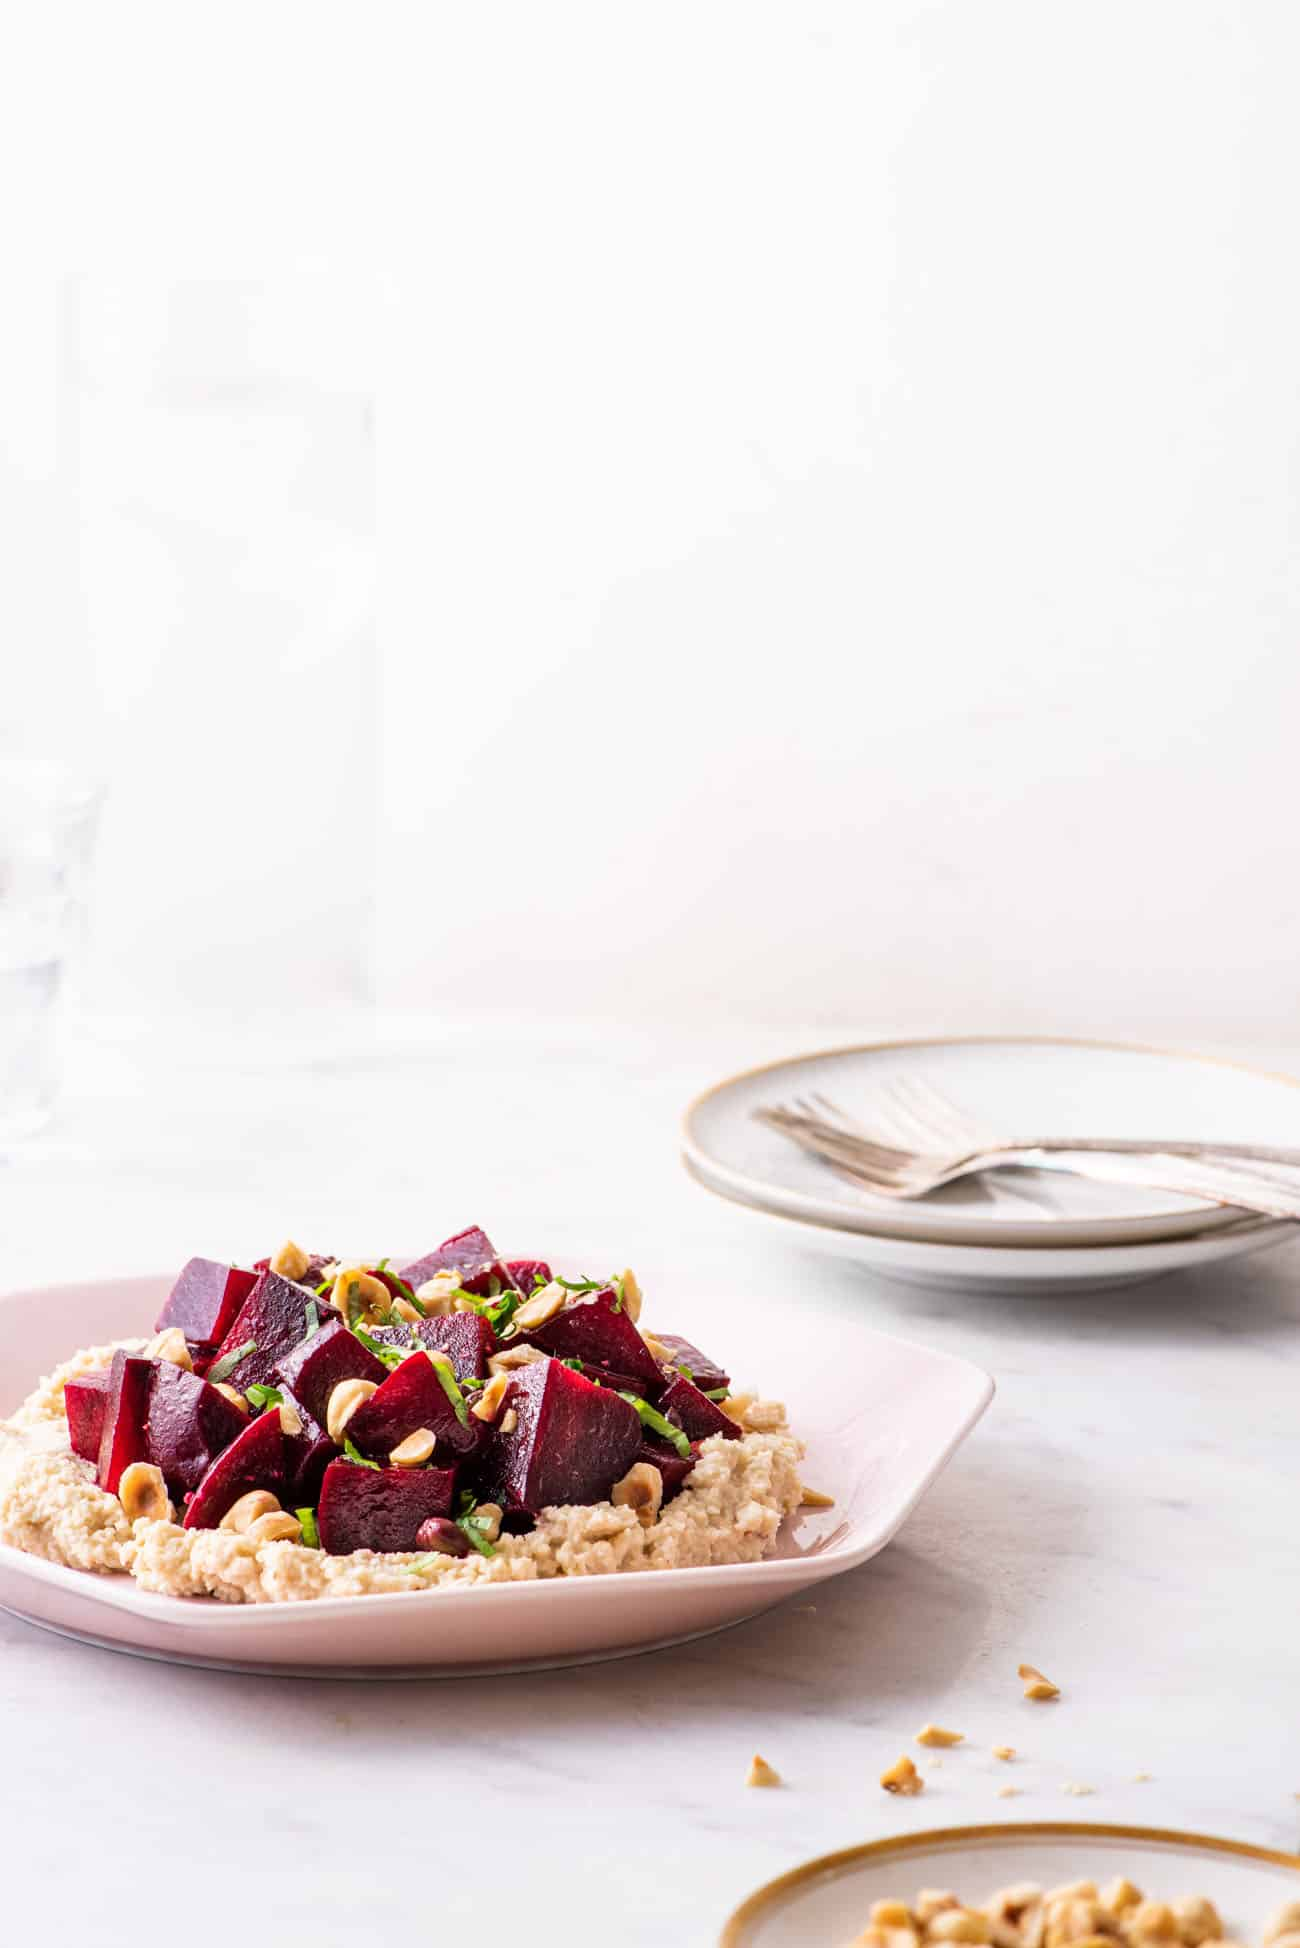 Marinated beets with cashew ricotta on a pink plate on a marble table next to a dish with chopped hazelnuts